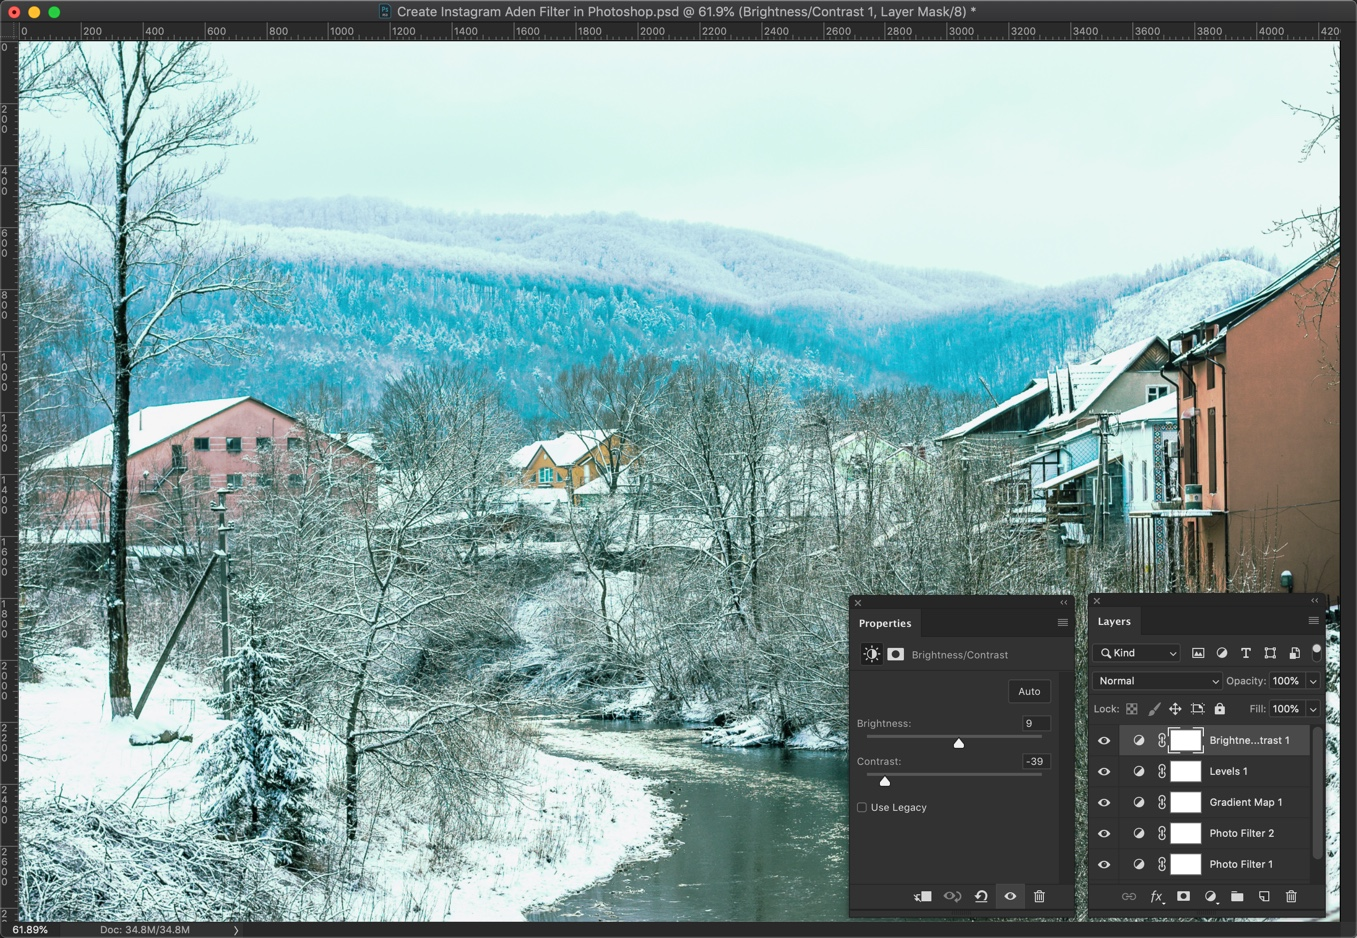 13 - [Action Included] Create Instagram Aden Filter in Photoshop